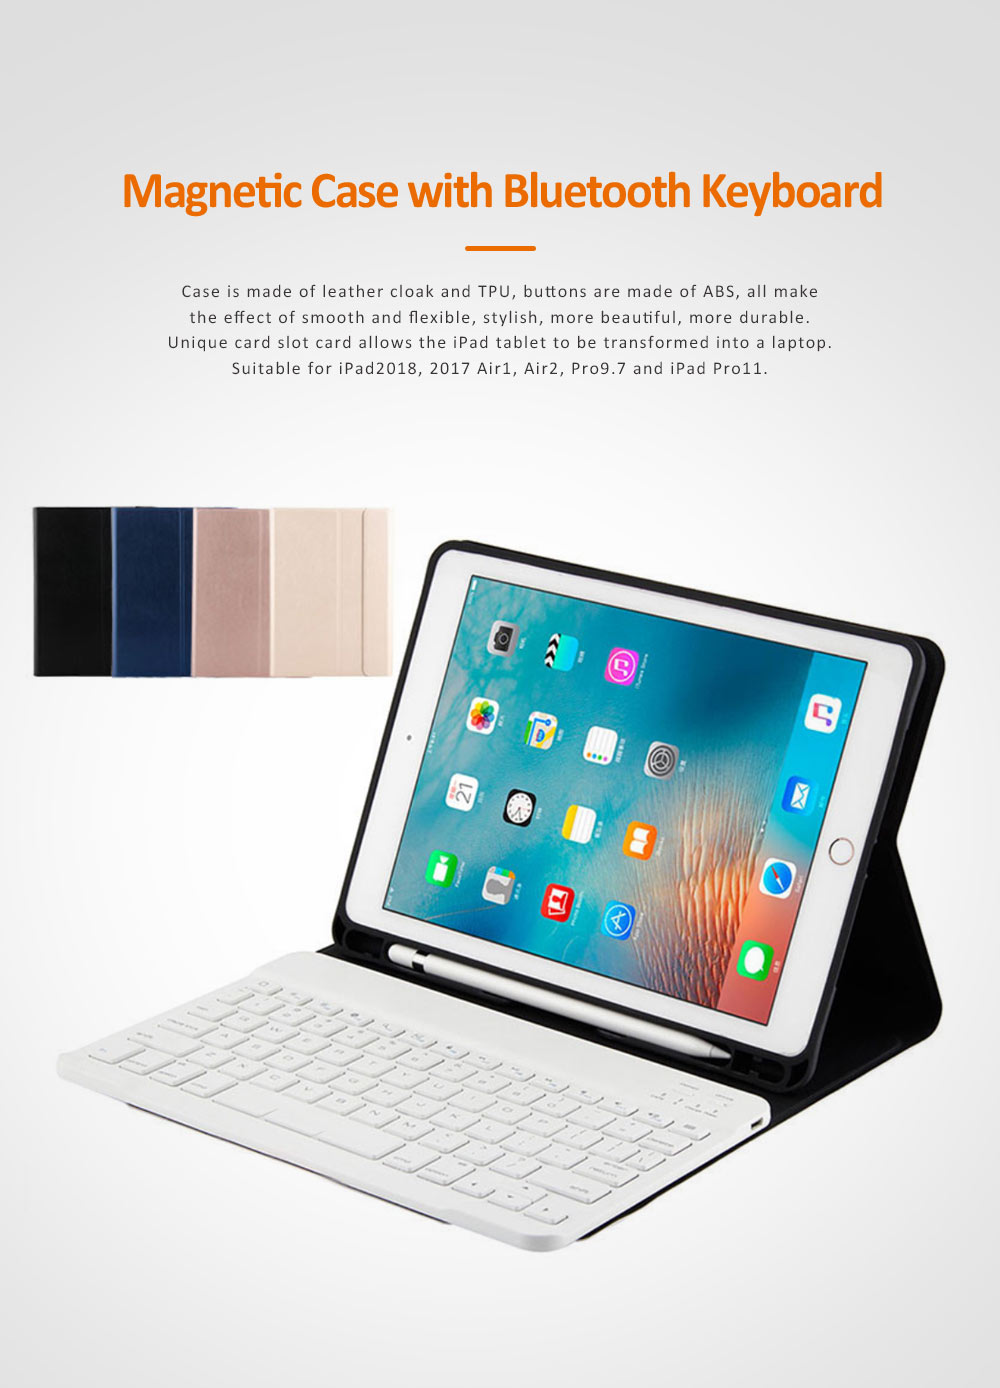 Smart Case with 3.0 Wireless Bluetooth Keyboard for iPad 9.7, Magnetic Leather Auto Sleep Awake Smart Case with Pencil Holder, Intelligent Sleep Protection Cover for Air 2 1, iPad Pro 9.7, ipad 9.7 2017 0